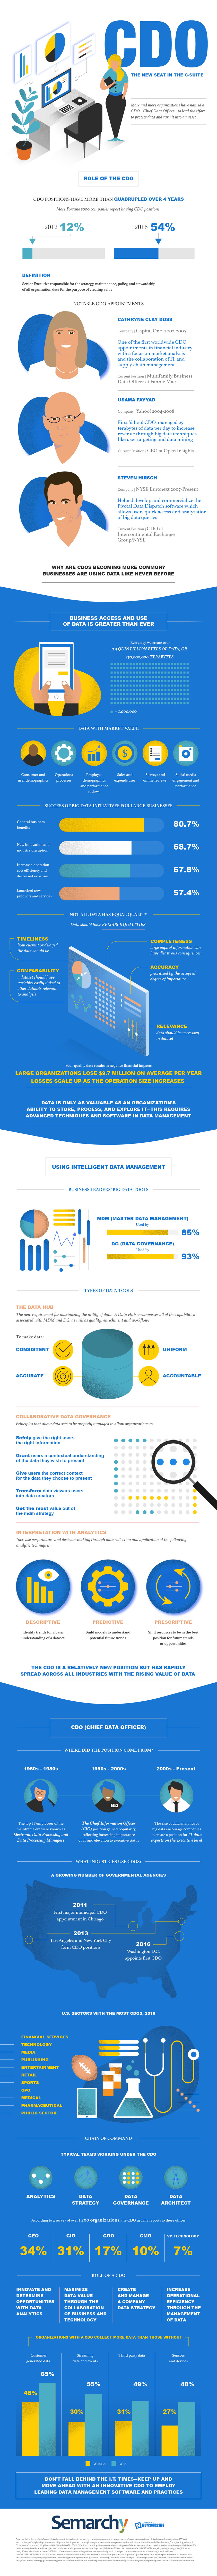 The New Role Of CDO [Infographic] 1